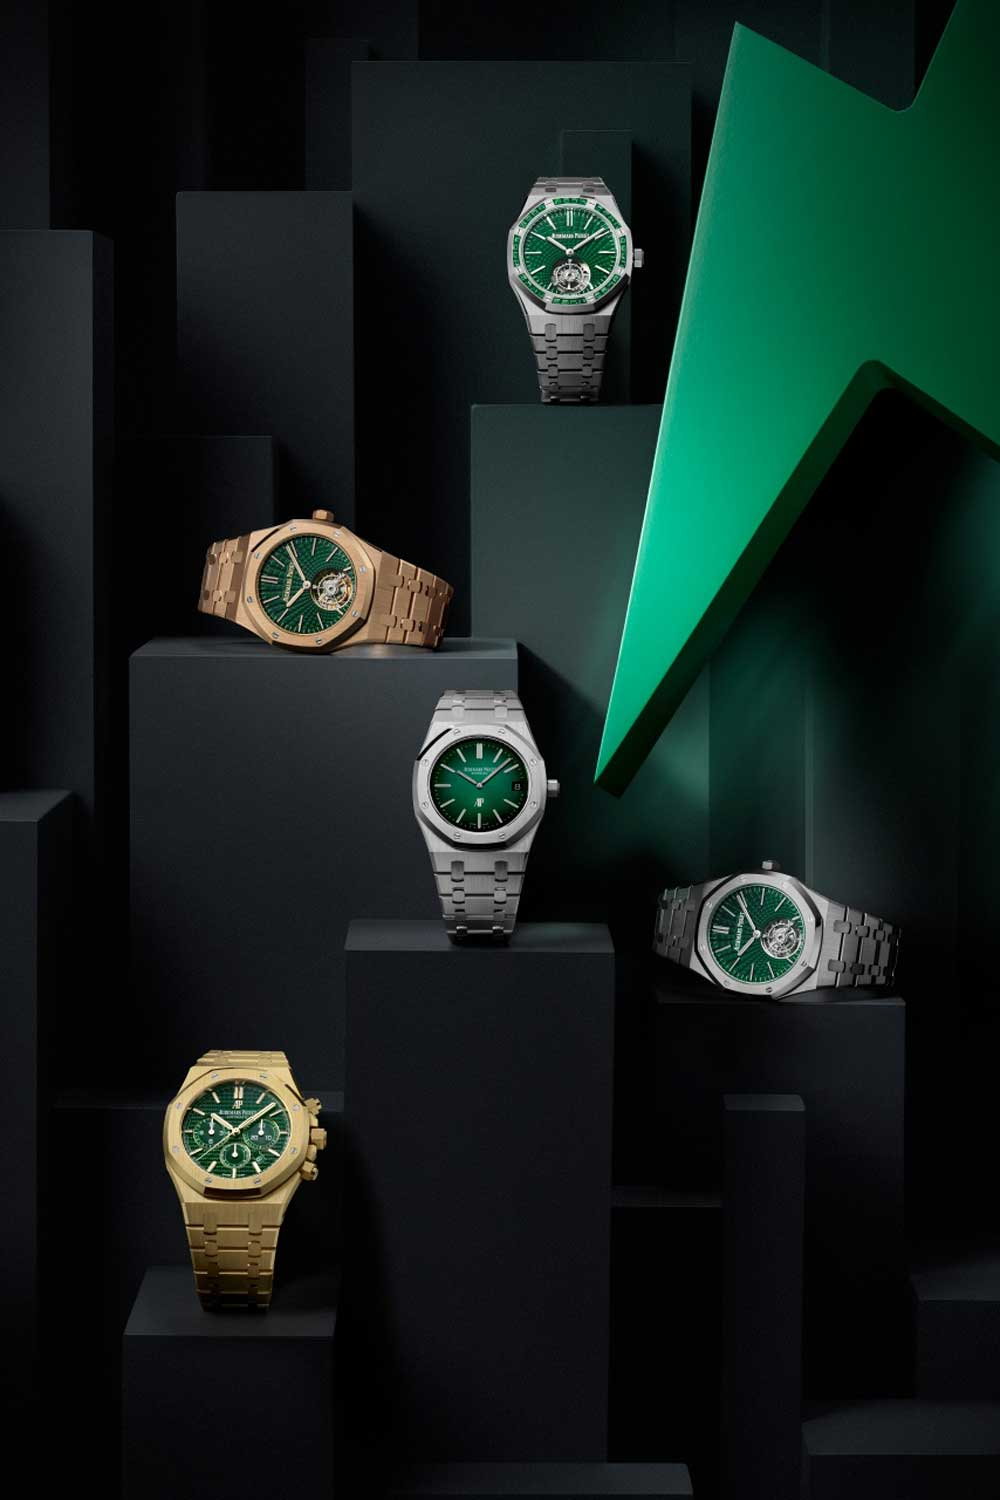 The new Royal Oak collection with a variety of models all enriched with green dials.